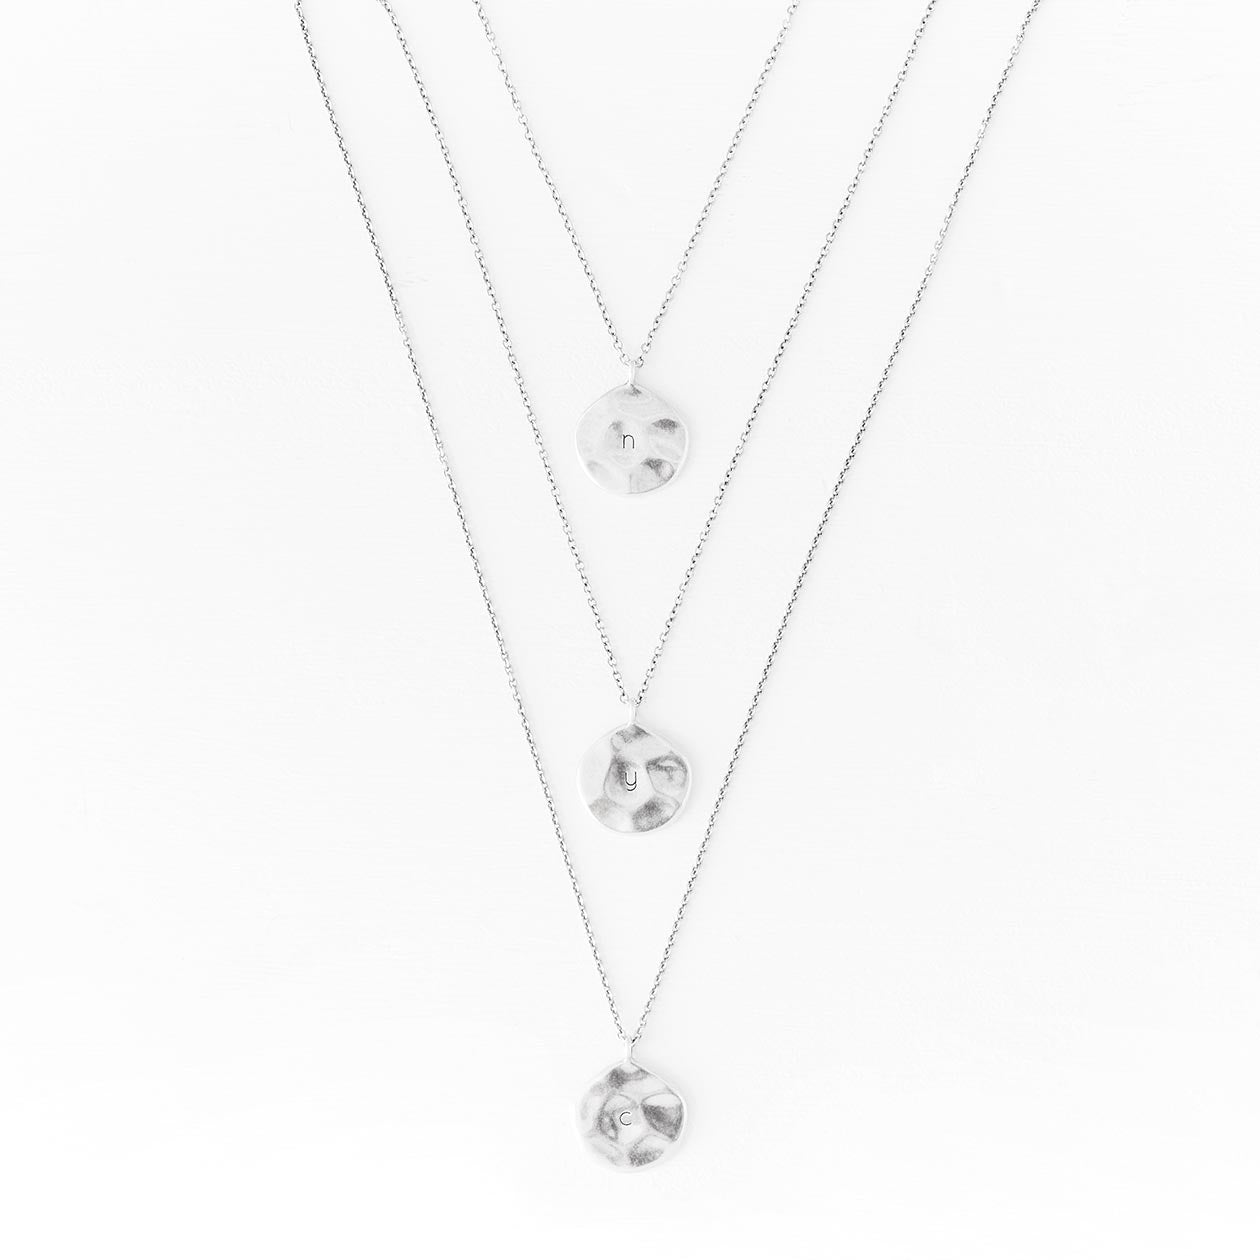 Luv AJ Silver Necklace Chain - c'est beau1872 Jewelry